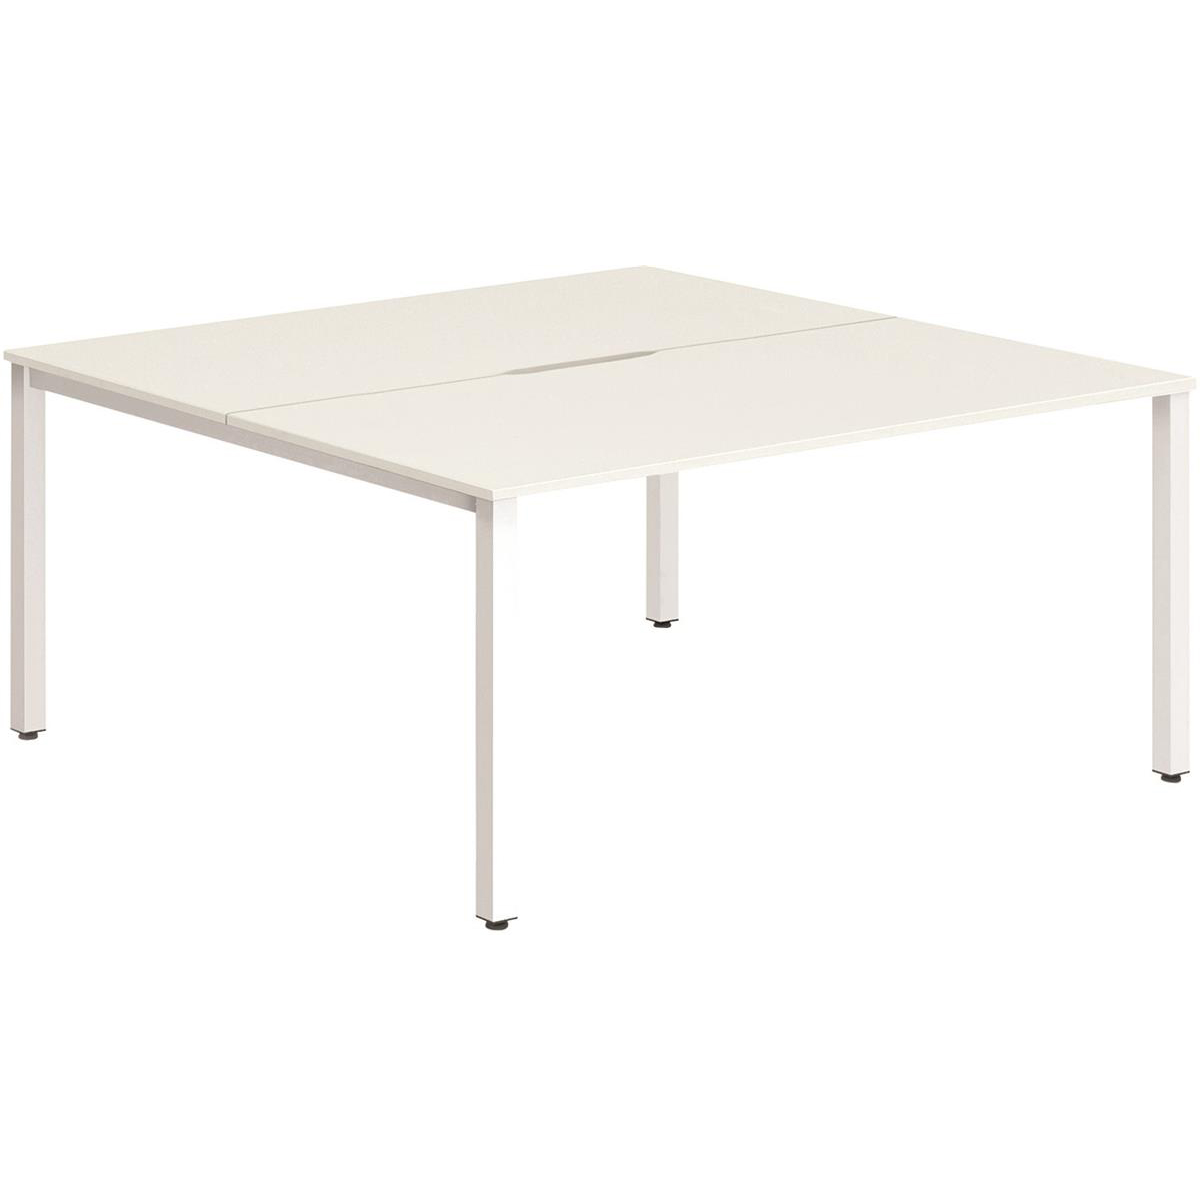 Trexus Bench Desk 2 Person Lockable Sliding Top 1200mm White with White Frame